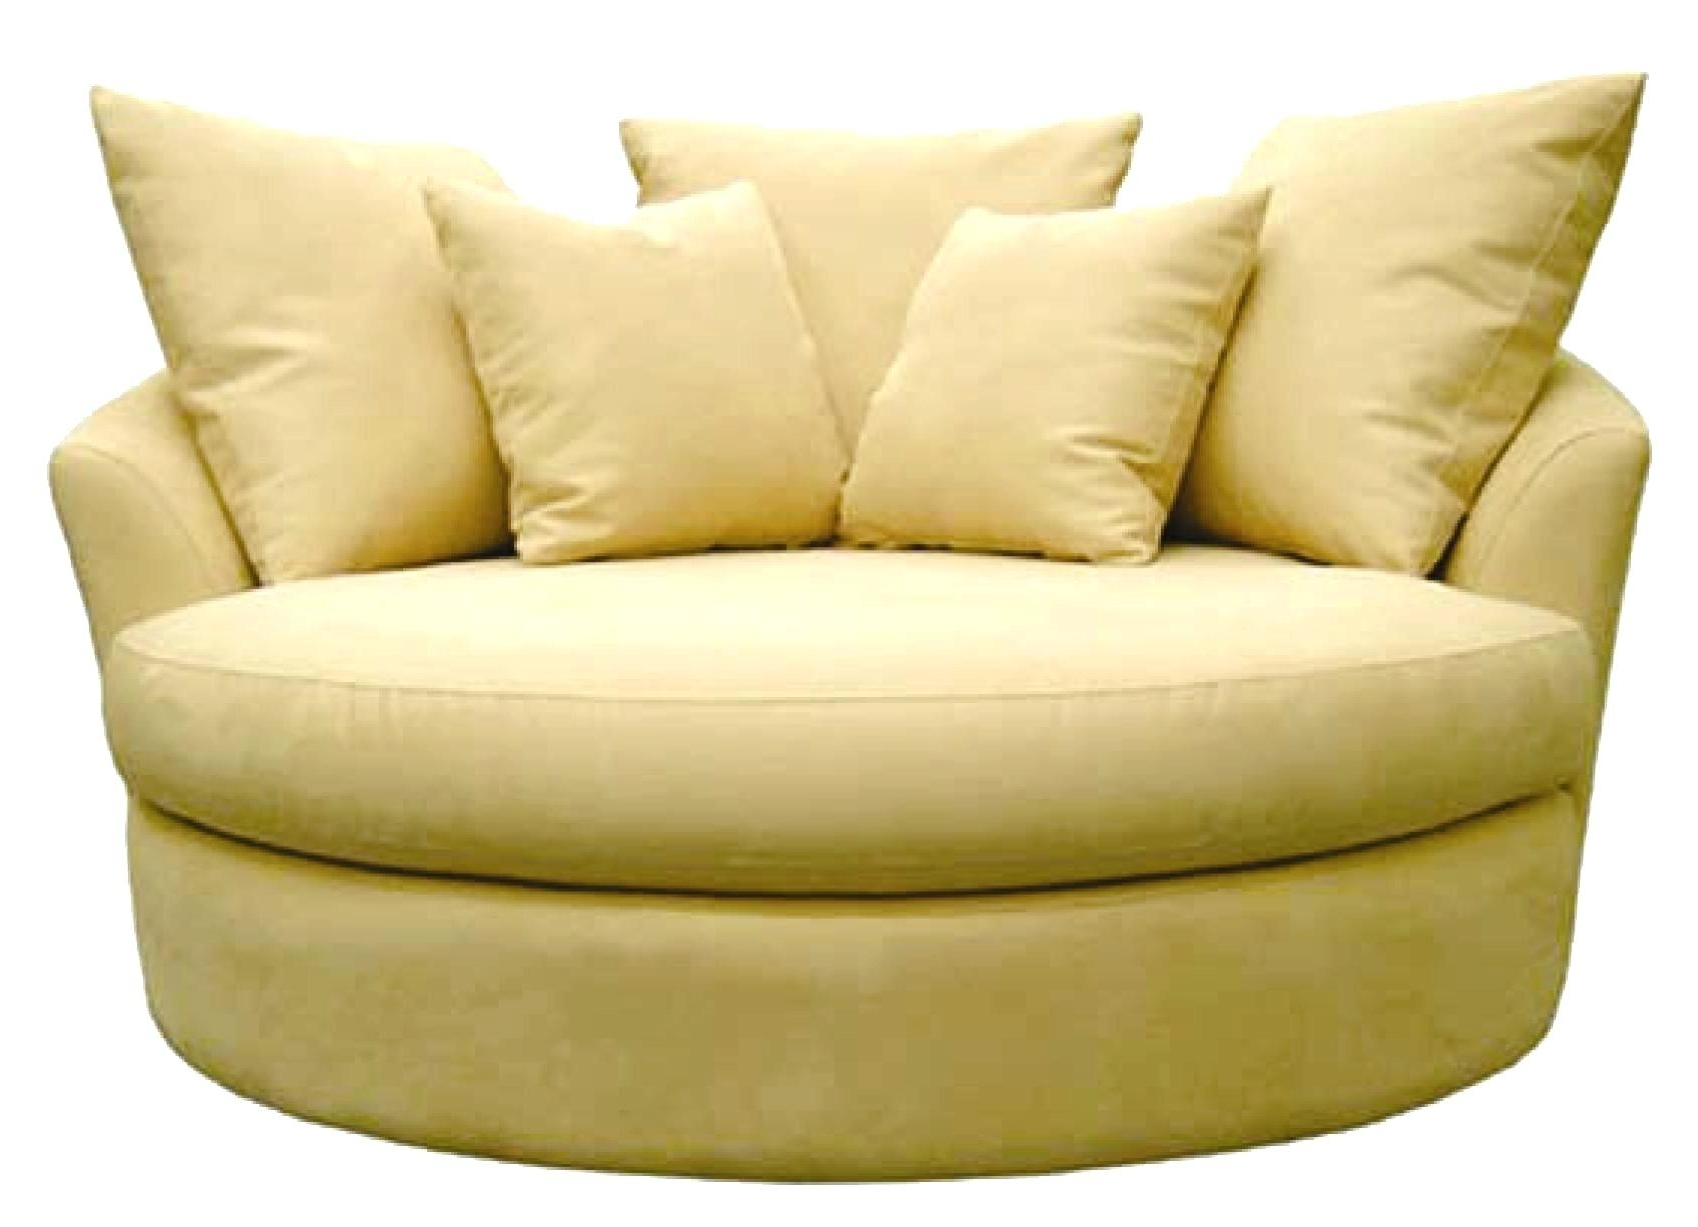 Popular Amazon Recliners Swivel Chair Living Room Oversized Reading Chair Inside Round Chaise Lounges (View 6 of 15)